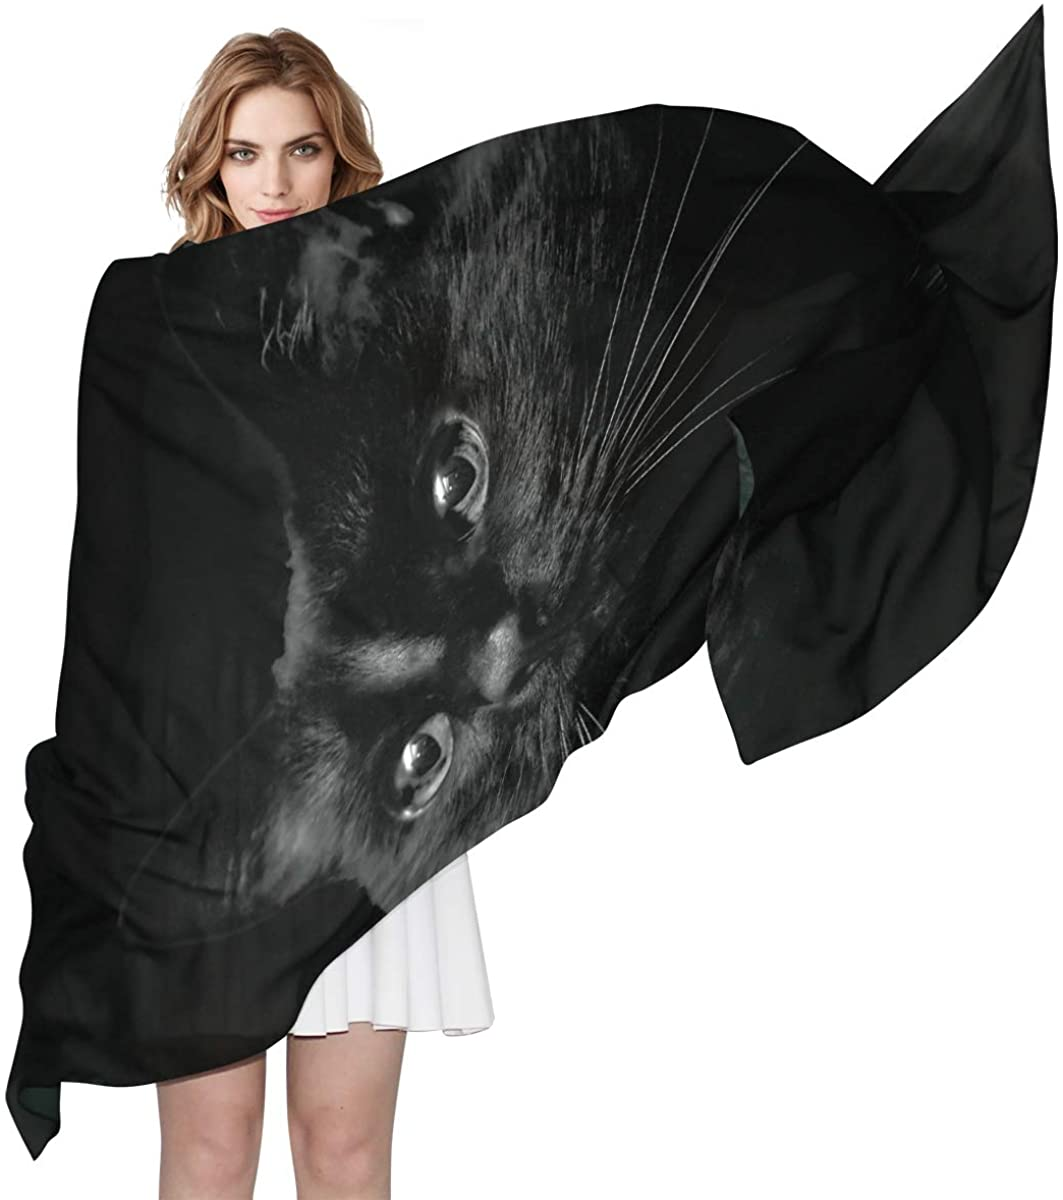 Scarf EELa Long Scrves Women Polyester Lightweight Soft Printed Black Cat Fashion Wrap Shawl Spring Winter 70x35 inches